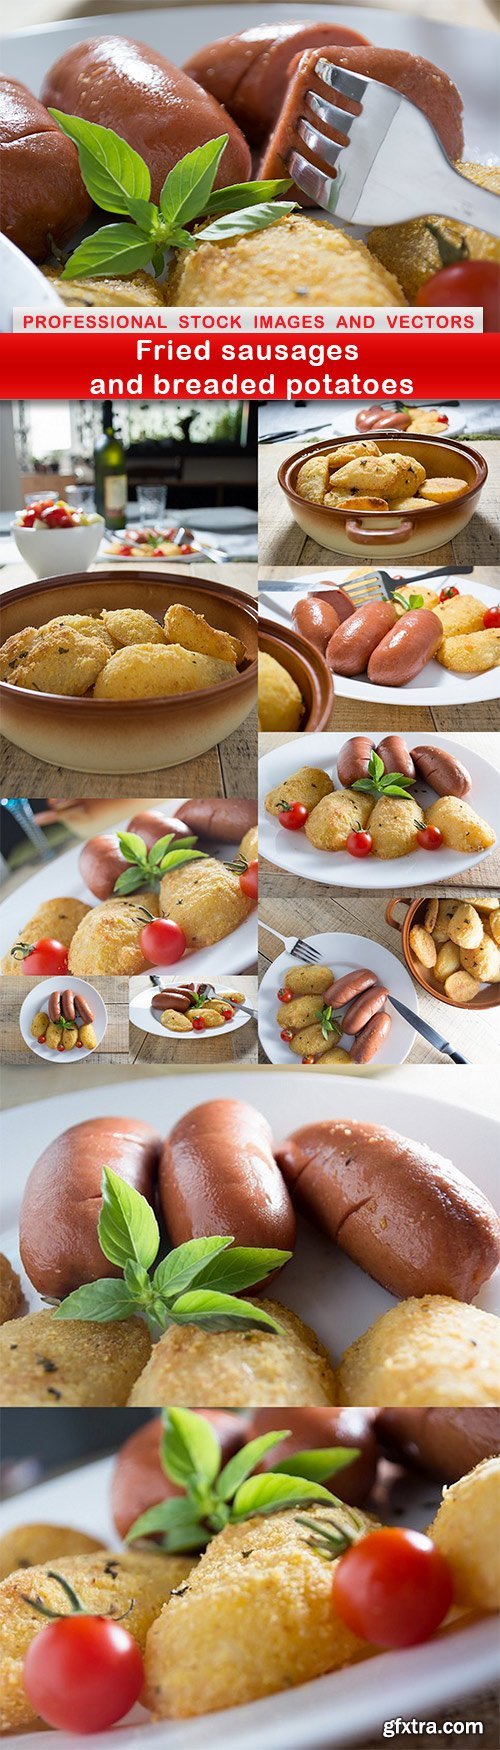 Fried sausages and breaded potatoes - 11 UHQ JPEG